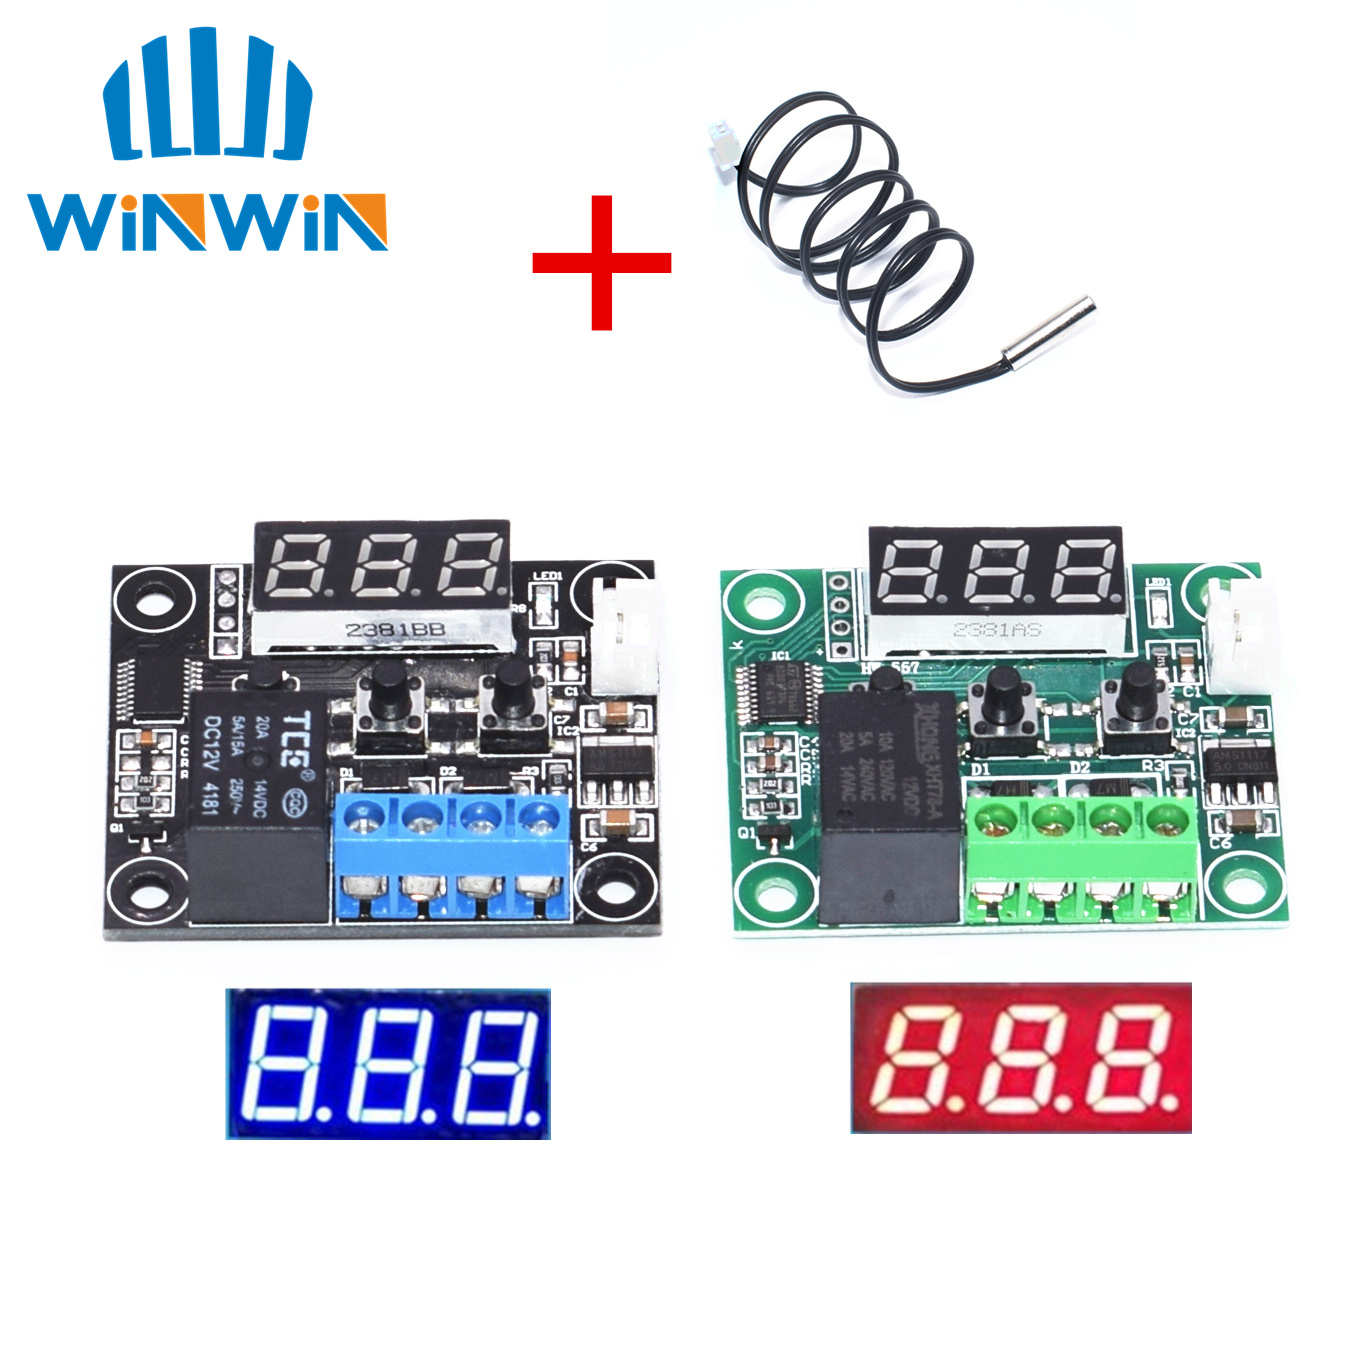 W1209 Dc 12v Led Digital Thermostat Temperature Control Thermometer Thermo Controller Switch Module 3d Printer Parts & Accessories Ntc Sensor